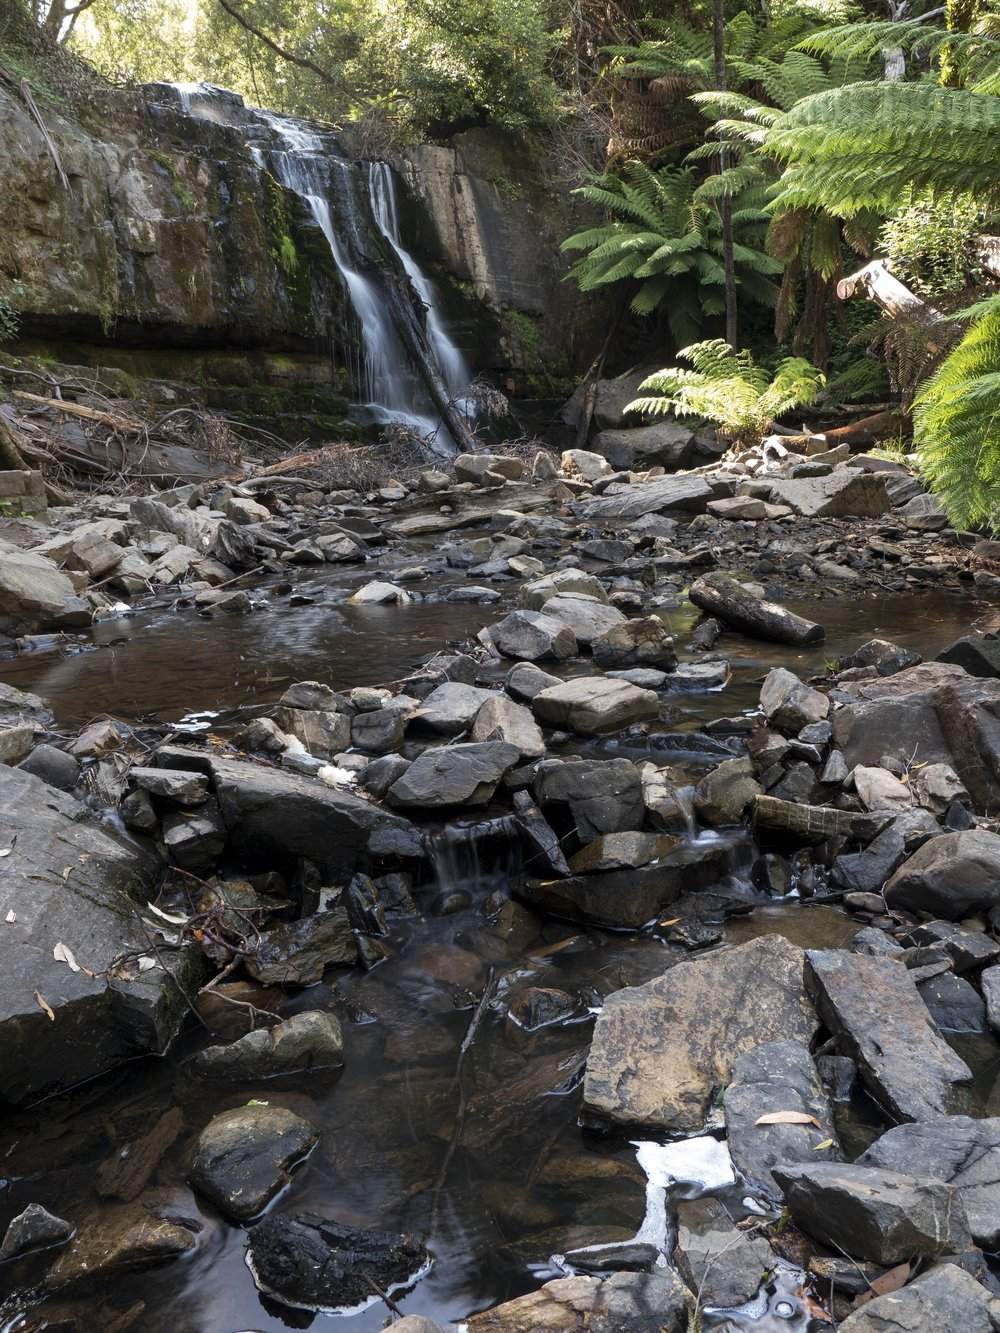 Taken recently as an example at a workshop, this image uses a slightly tilted camera to add DOF. The focus point was the clump of rocks in the foreground with an aperture of f6.3 and the shutter speed roughly 1.5 seconds. Without tilting, the DOF would have only allowed focus from the foreground to half way up the stream or the waterfall only with a soft foreground. The catch with tilting is that anything in the top of the frame that is near to you will be out of focus.  This image would have been better balanced with wet rocks less wind and less sunlight, but time was poor.